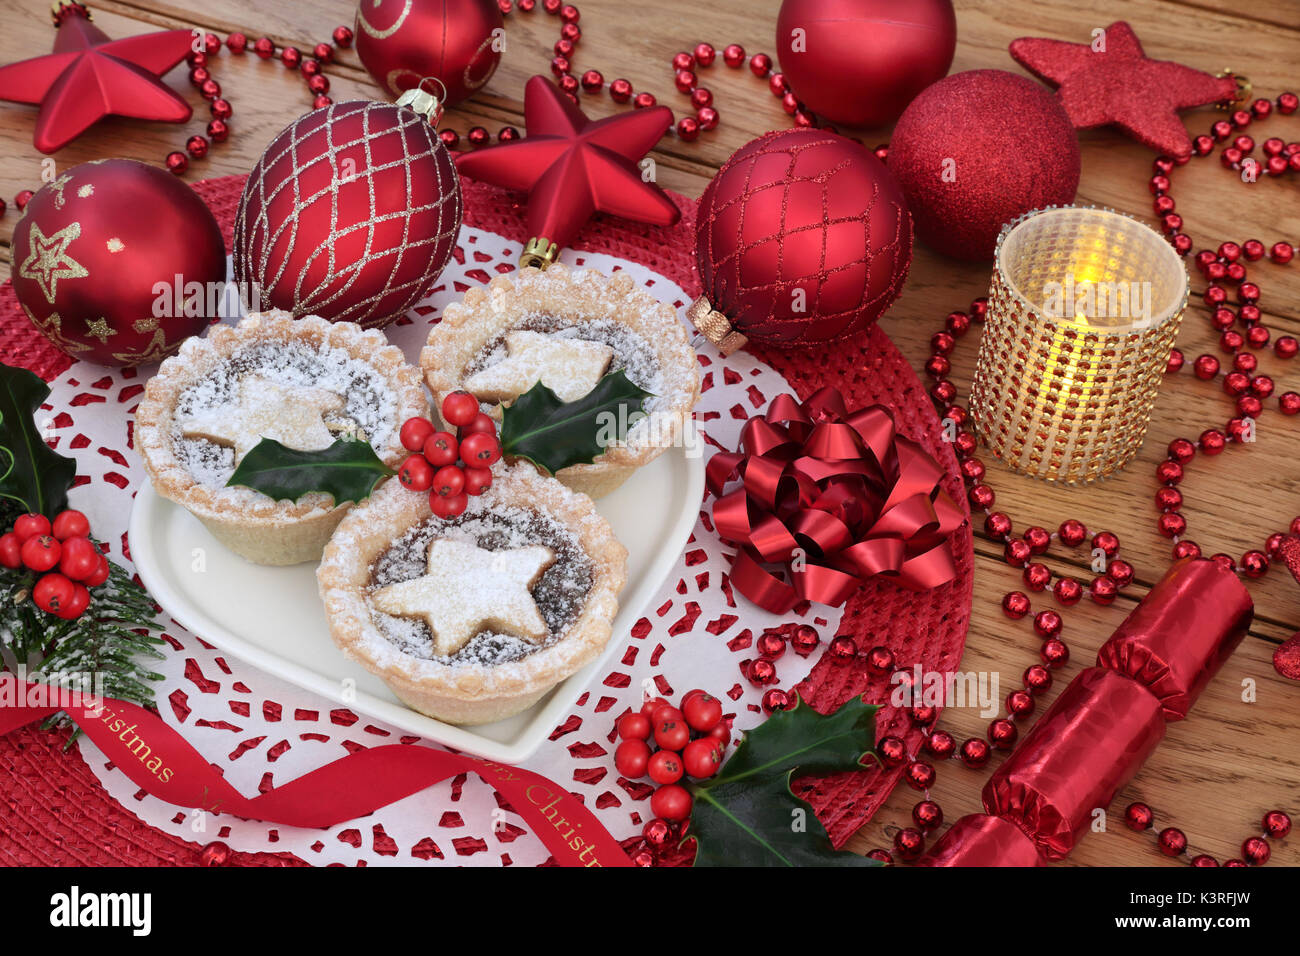 Why is holly a traditional christmas decoration - Traditional Christmas Iince Pies On A Heart Shaped Plate With Red Bauble Decorations And Holly With